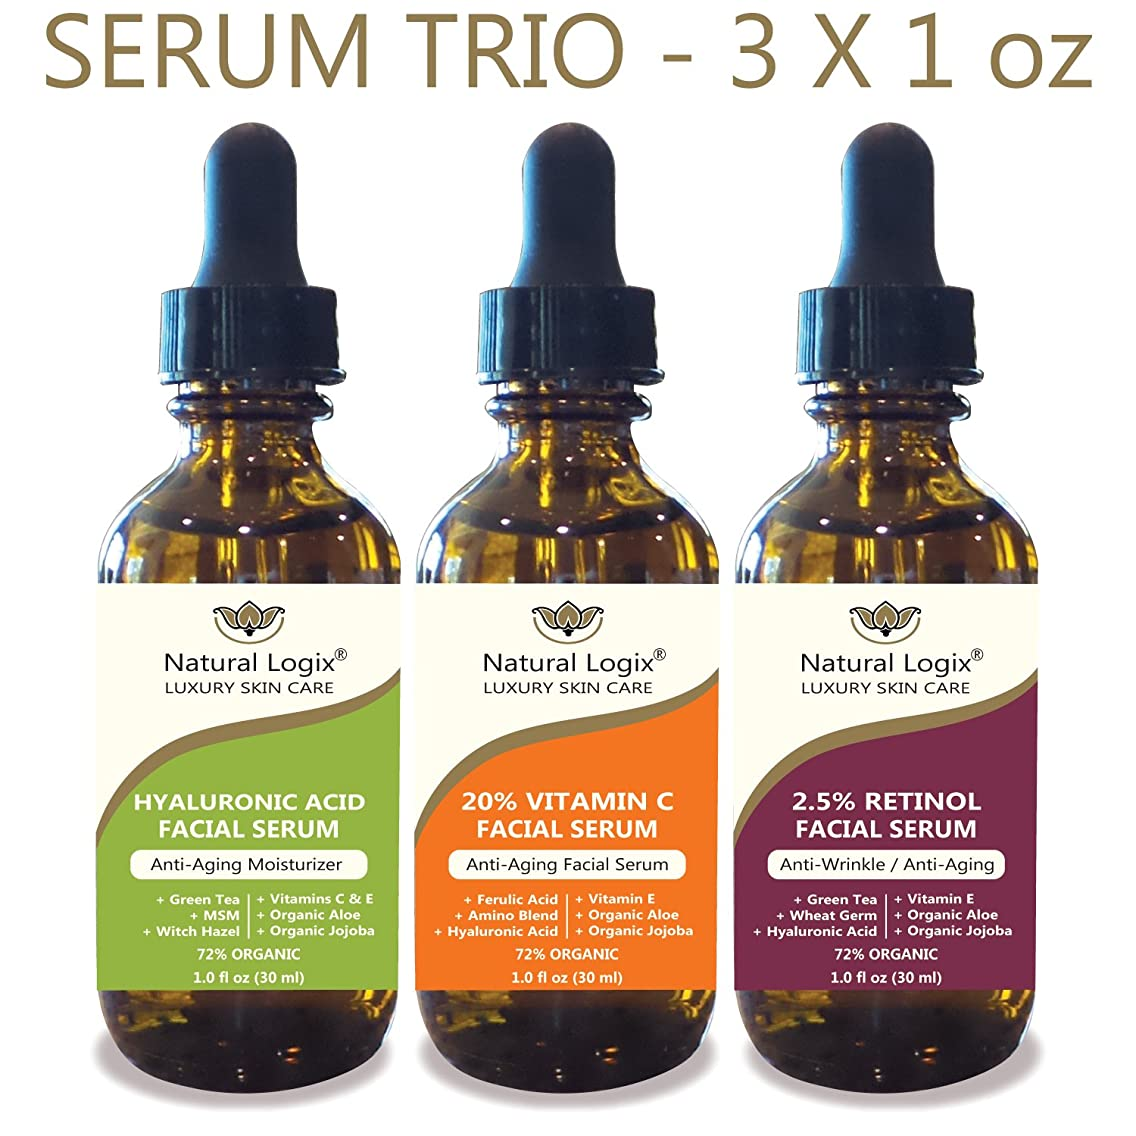 Natural Logix 3 Bottle Serum Set – Natural Logix Anti-Aging Serum Trio - 20% VITAMIN C (1oz) | 2.5% RETINOL (1oz) | HYALURONIC ACID (1oz), Fade Dark Spots, Evens Skin Tone, 3 X 1 oz